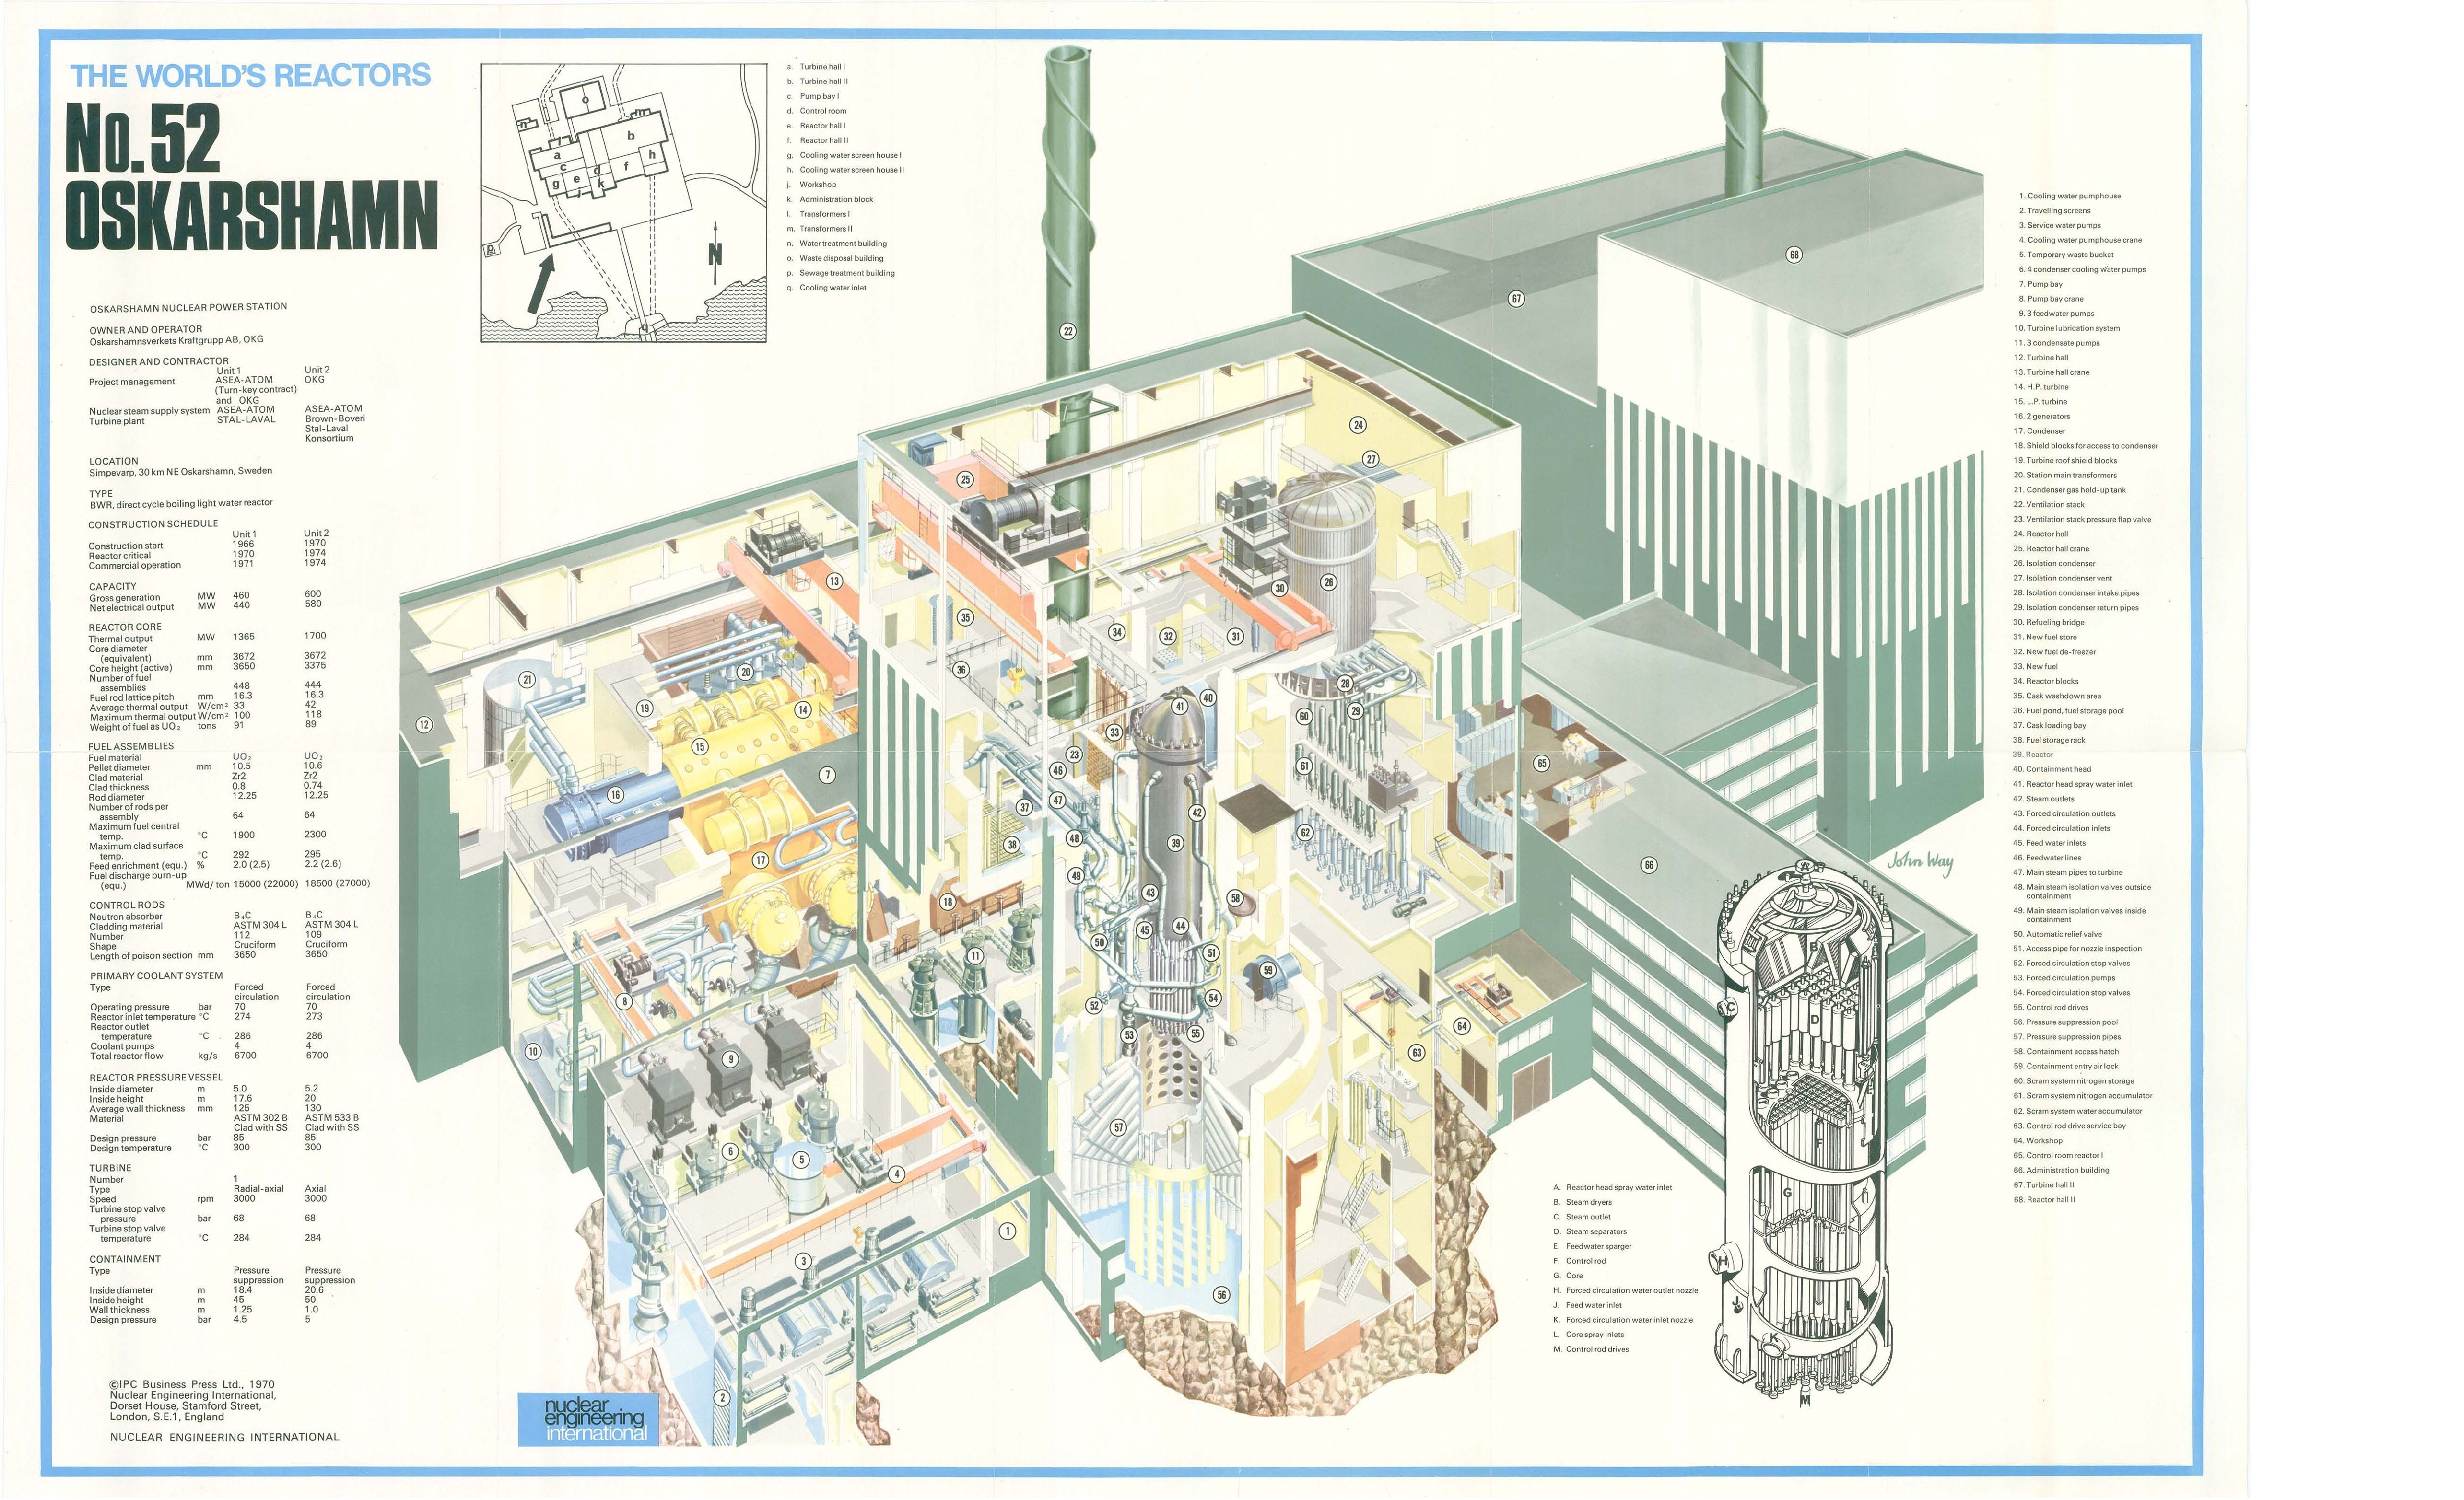 Todos os tamanhos | Nuclear Reactor Cutaway Schematic -- Oskarshamn on schematic of a boiler, schematic of a school, schematic of a television, schematic of a transformer, schematic of a church, schematic of a refinery,